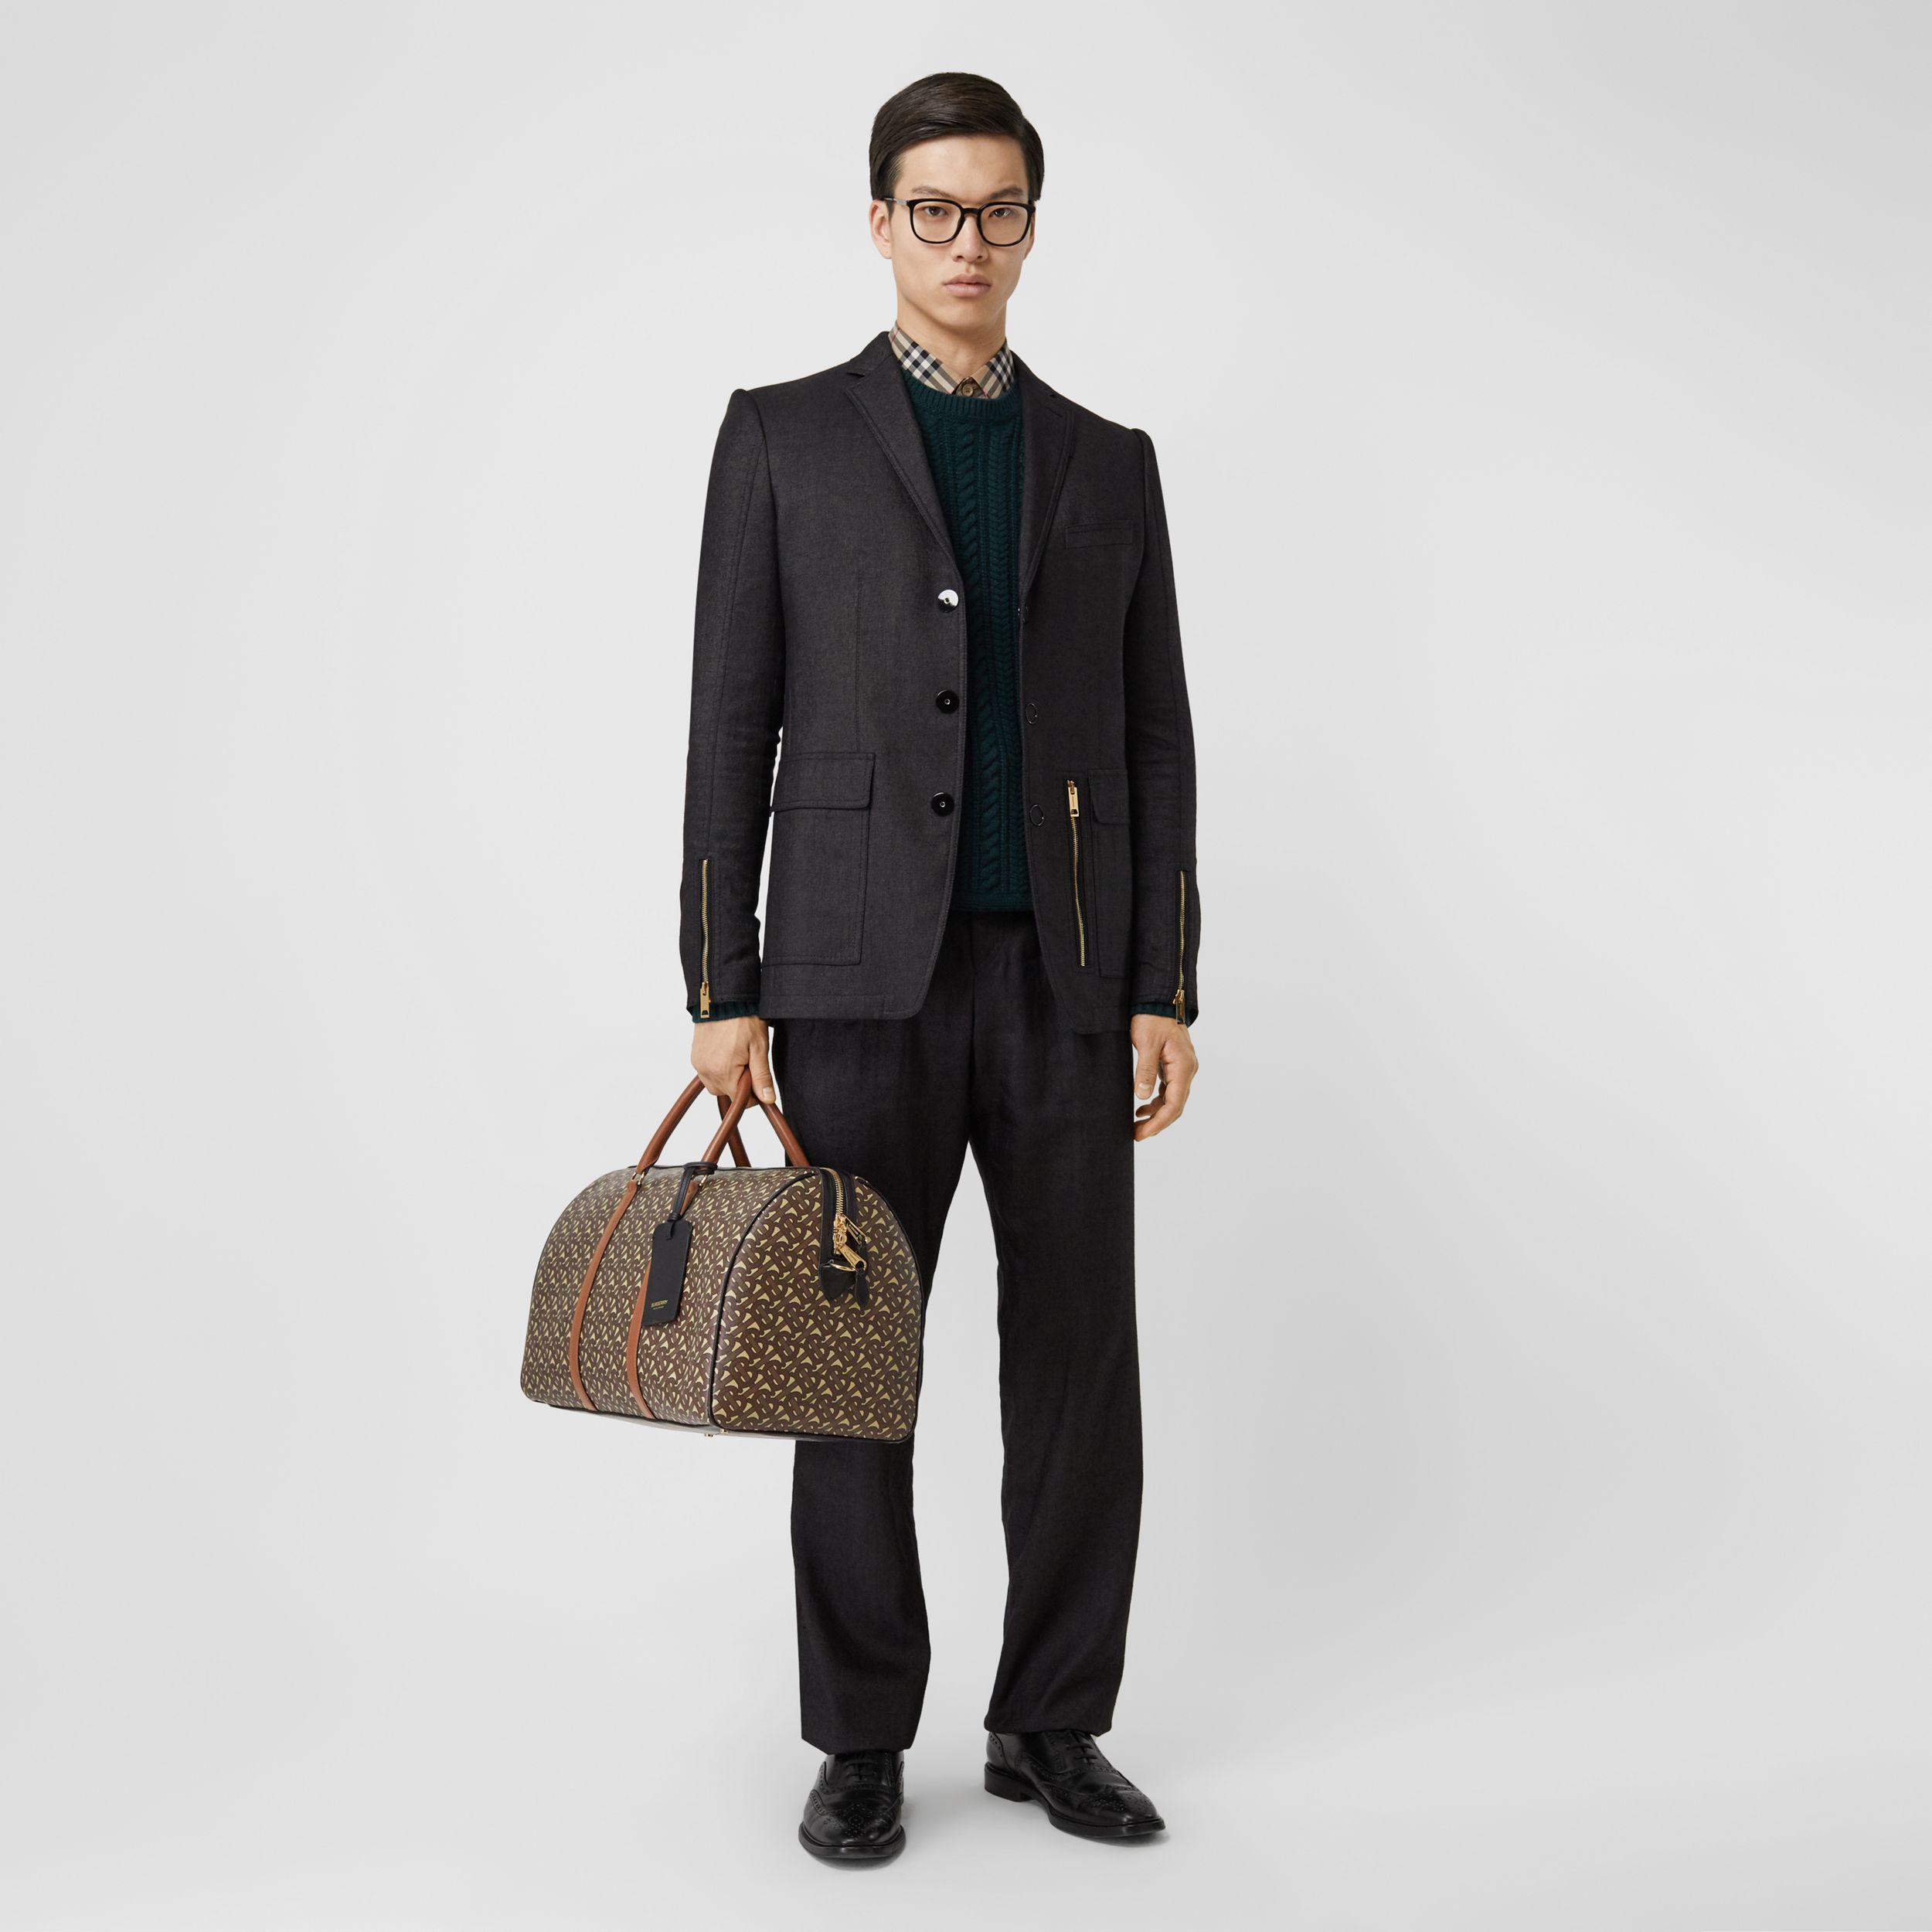 Monogram Print E-canvas and Leather Holdall in Bridle Brown - Men | Burberry - 3